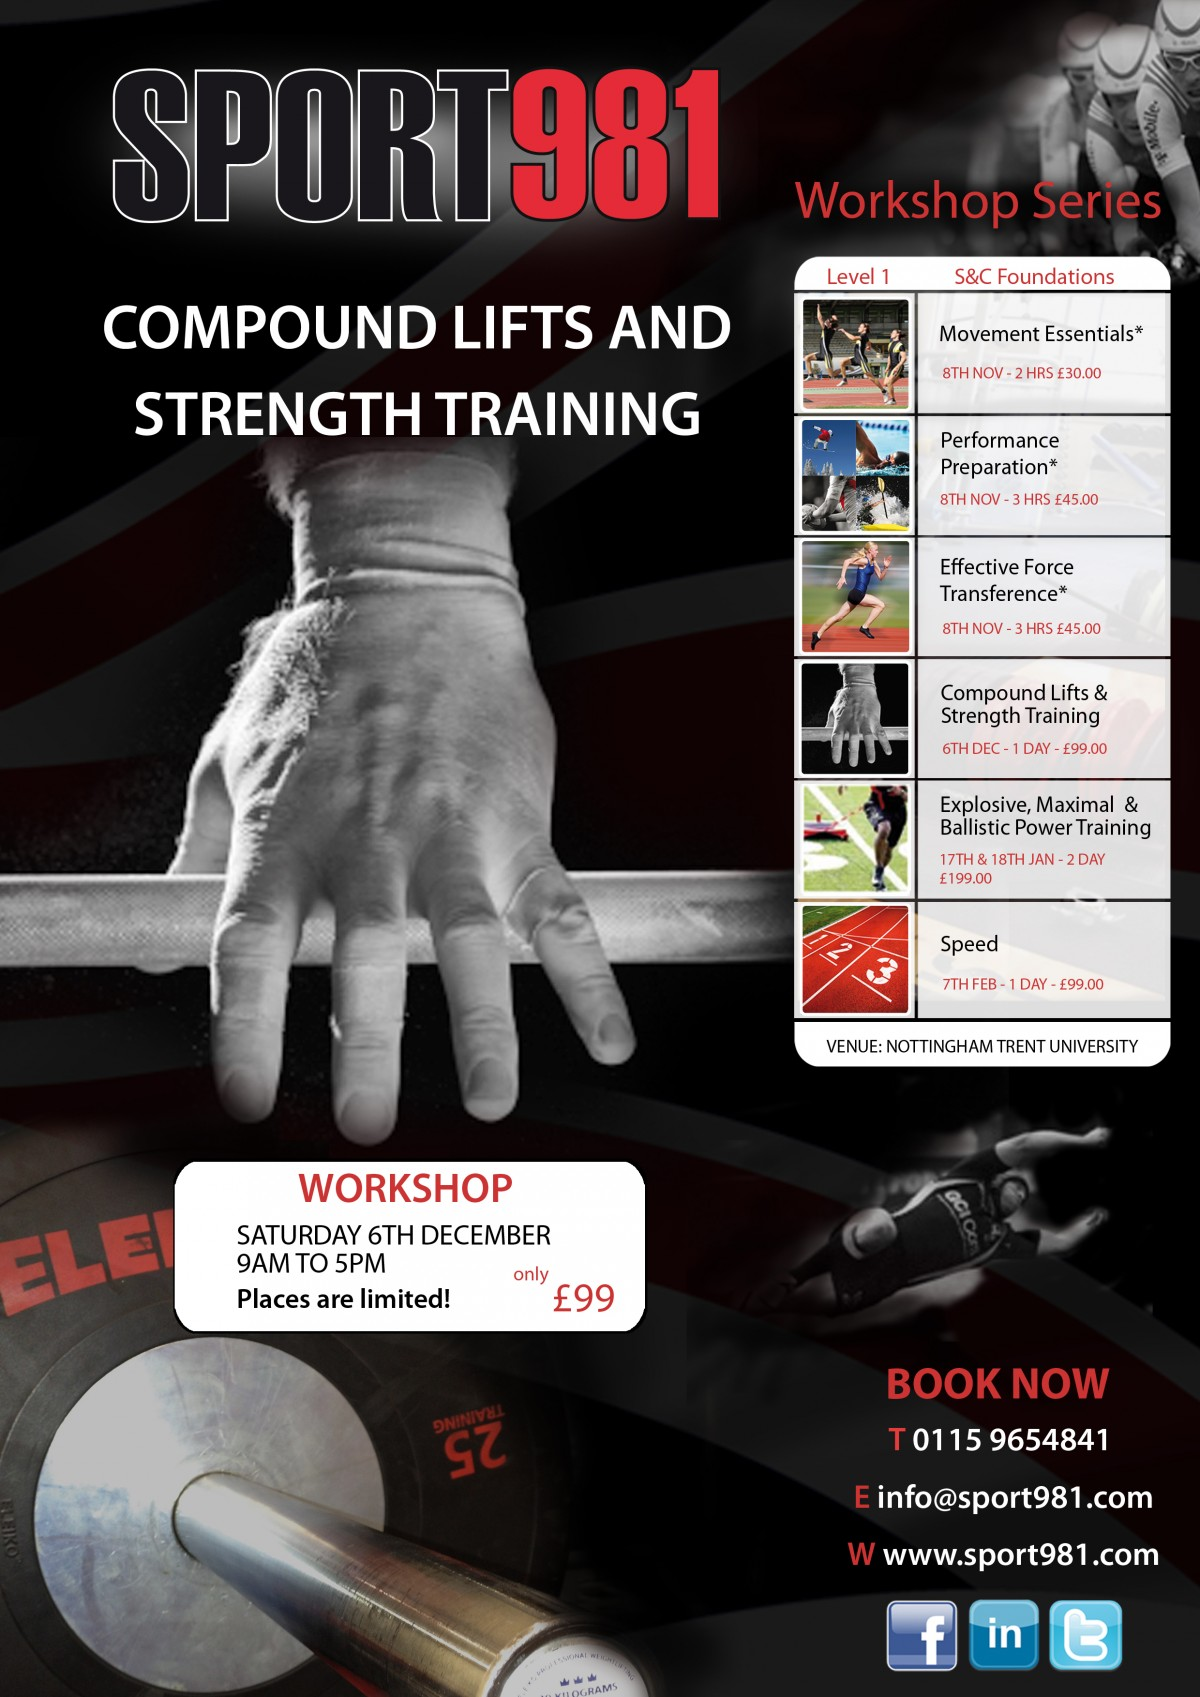 Compound lifts and Strength Training Workshop